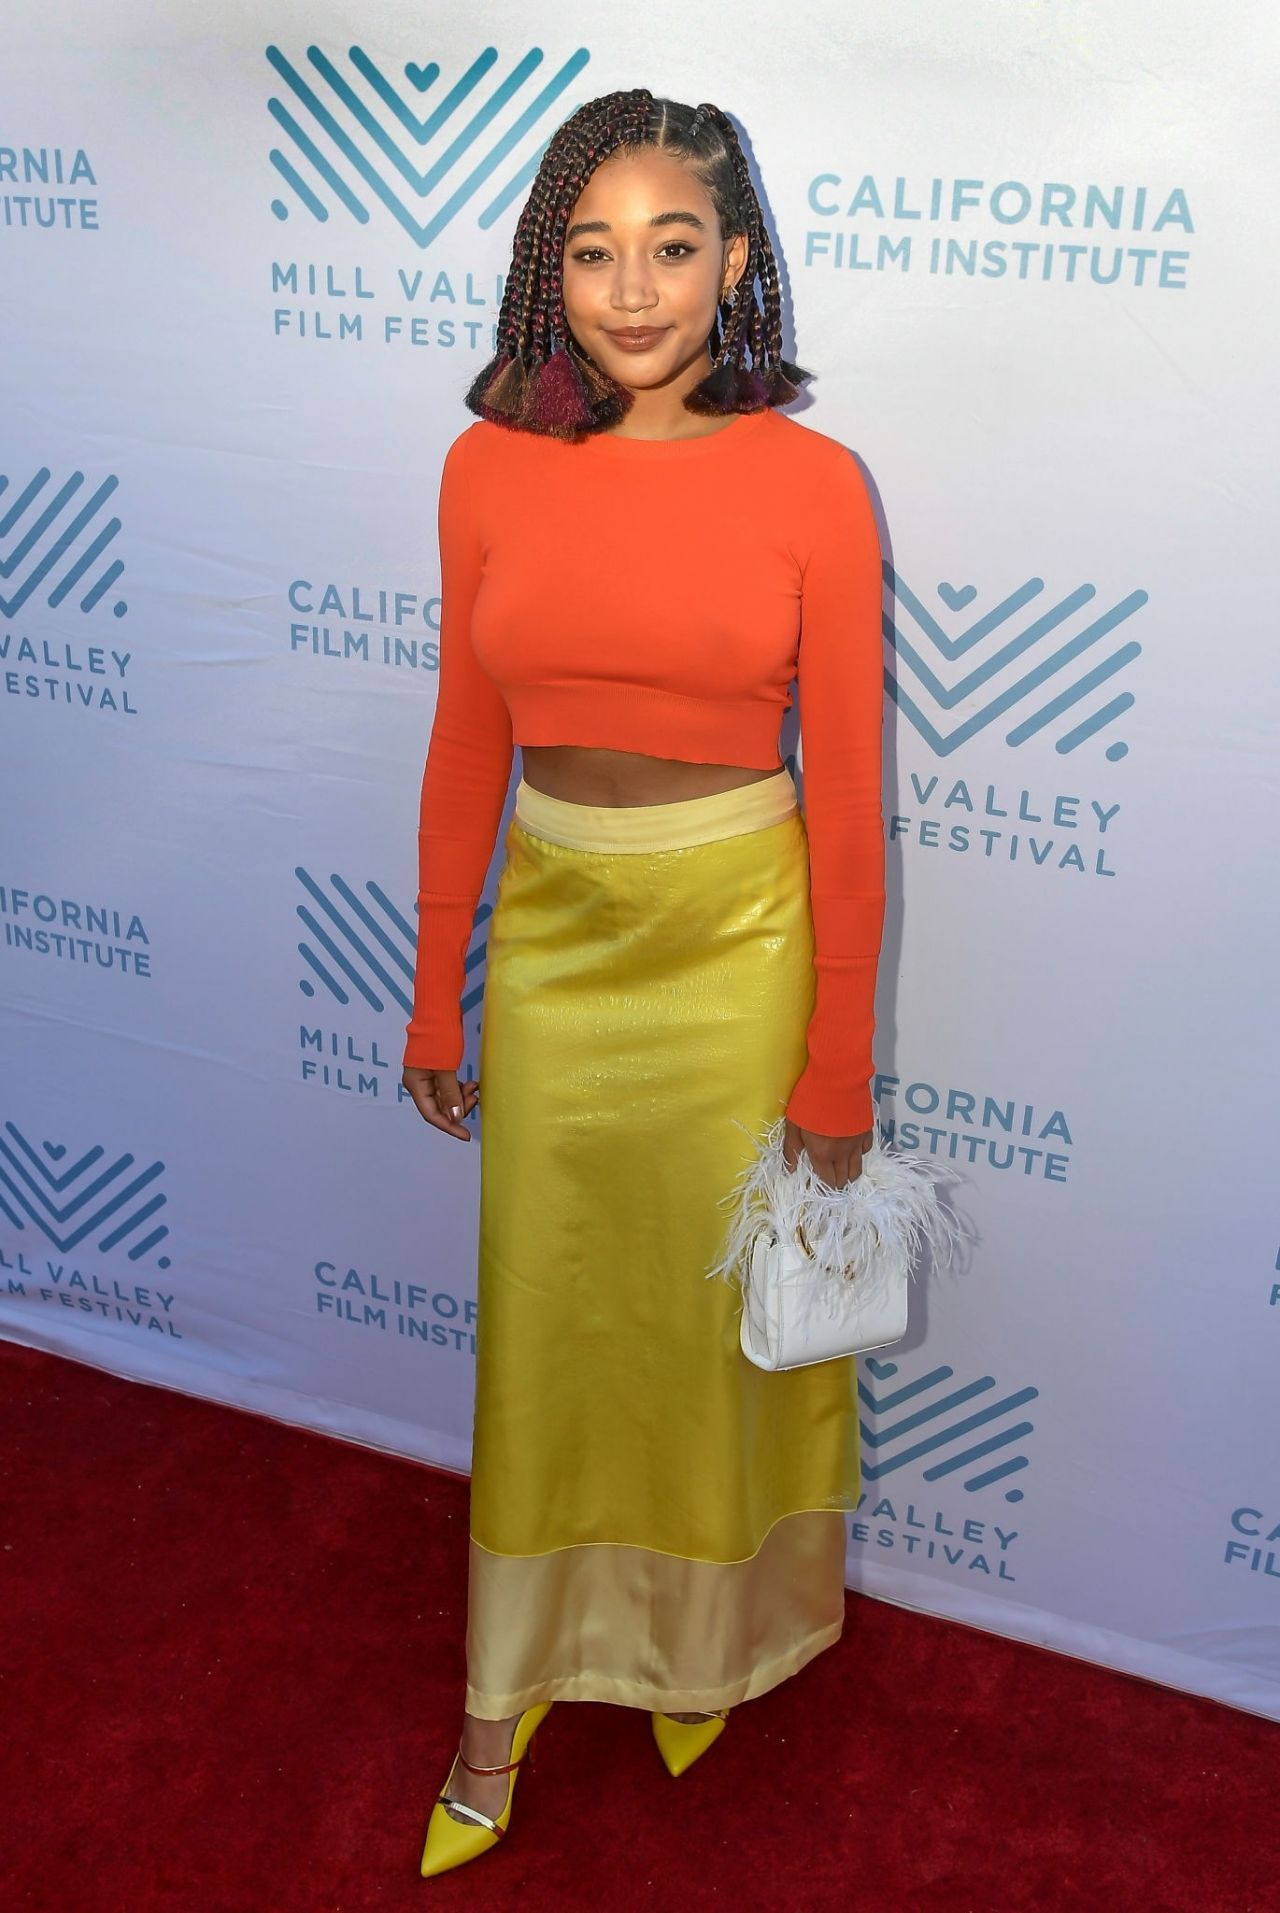 amandla-stenberg-the-hate-you-give-red-carpet-at-2018-mill-valley-film-festival-5.jpg